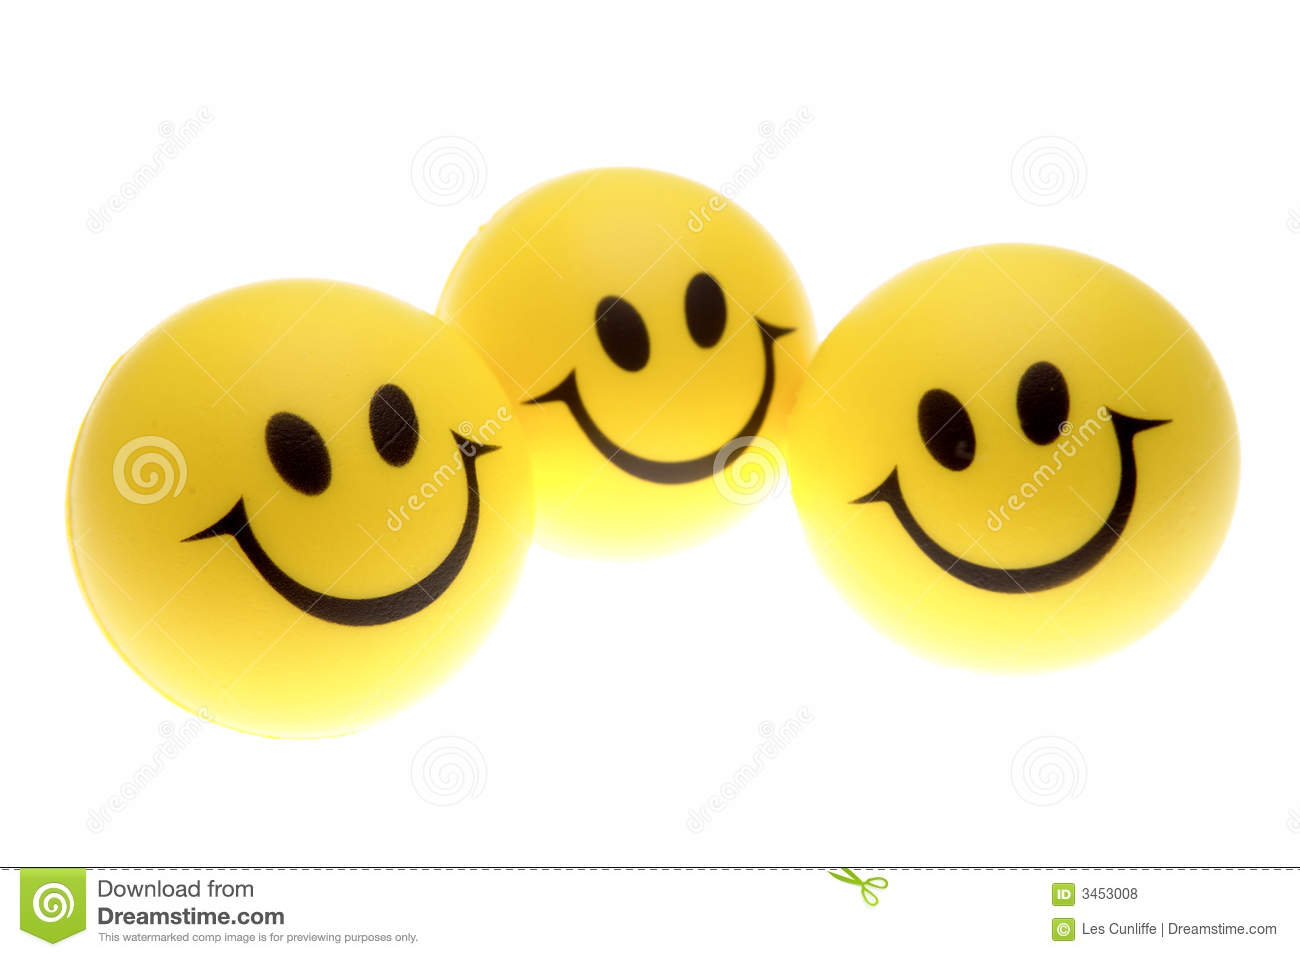 Smiley Faces Royalty Free Stock Photos - Image: 3453008: www.dreamstime.com/royalty-free-stock-photos-smiley-faces-image3453008